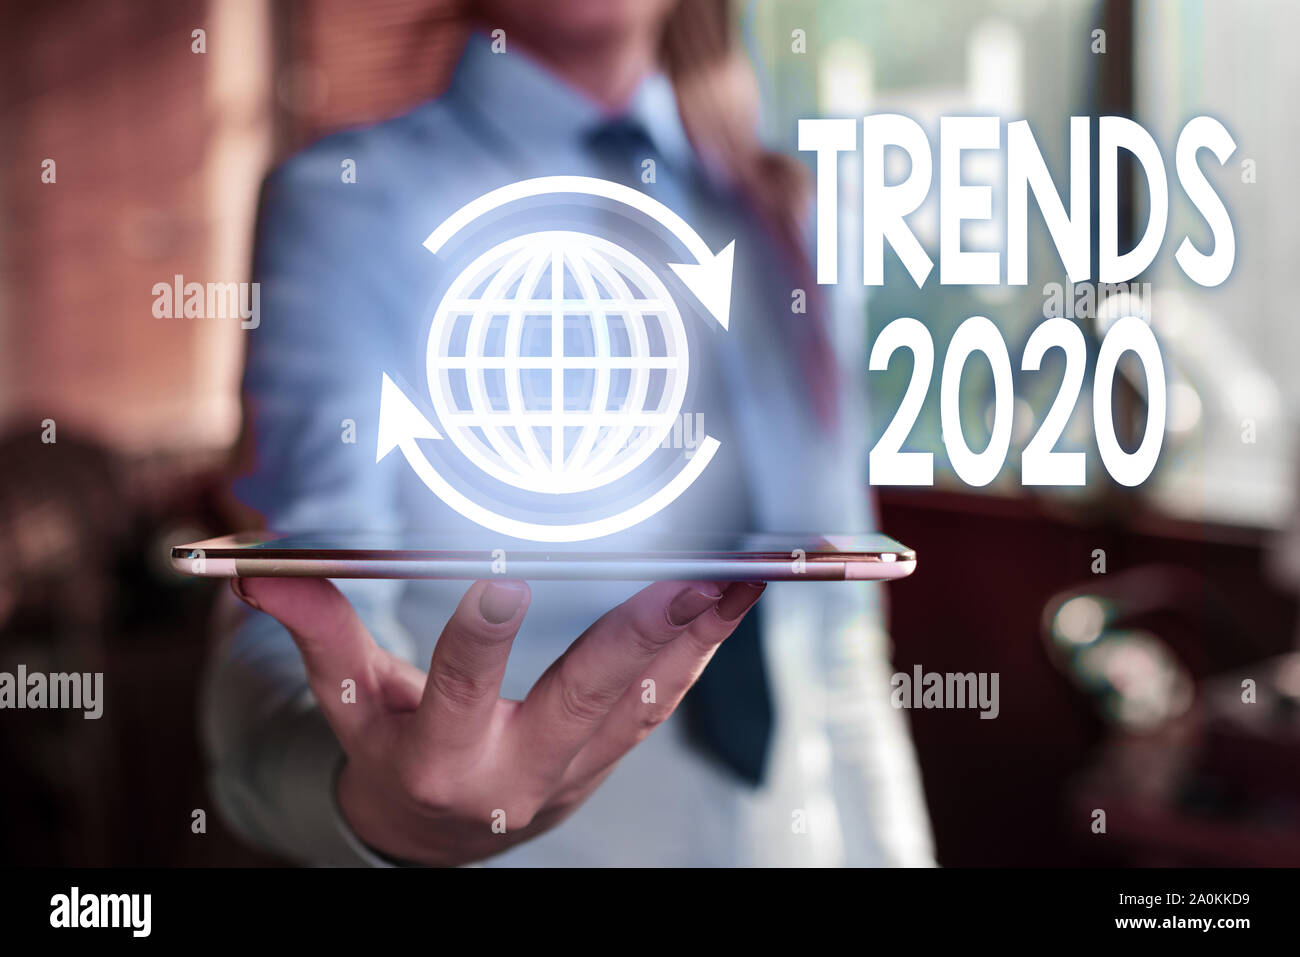 Upcoming Trends 2020.Word Writing Text Trends 2020 Business Photo Showcasing